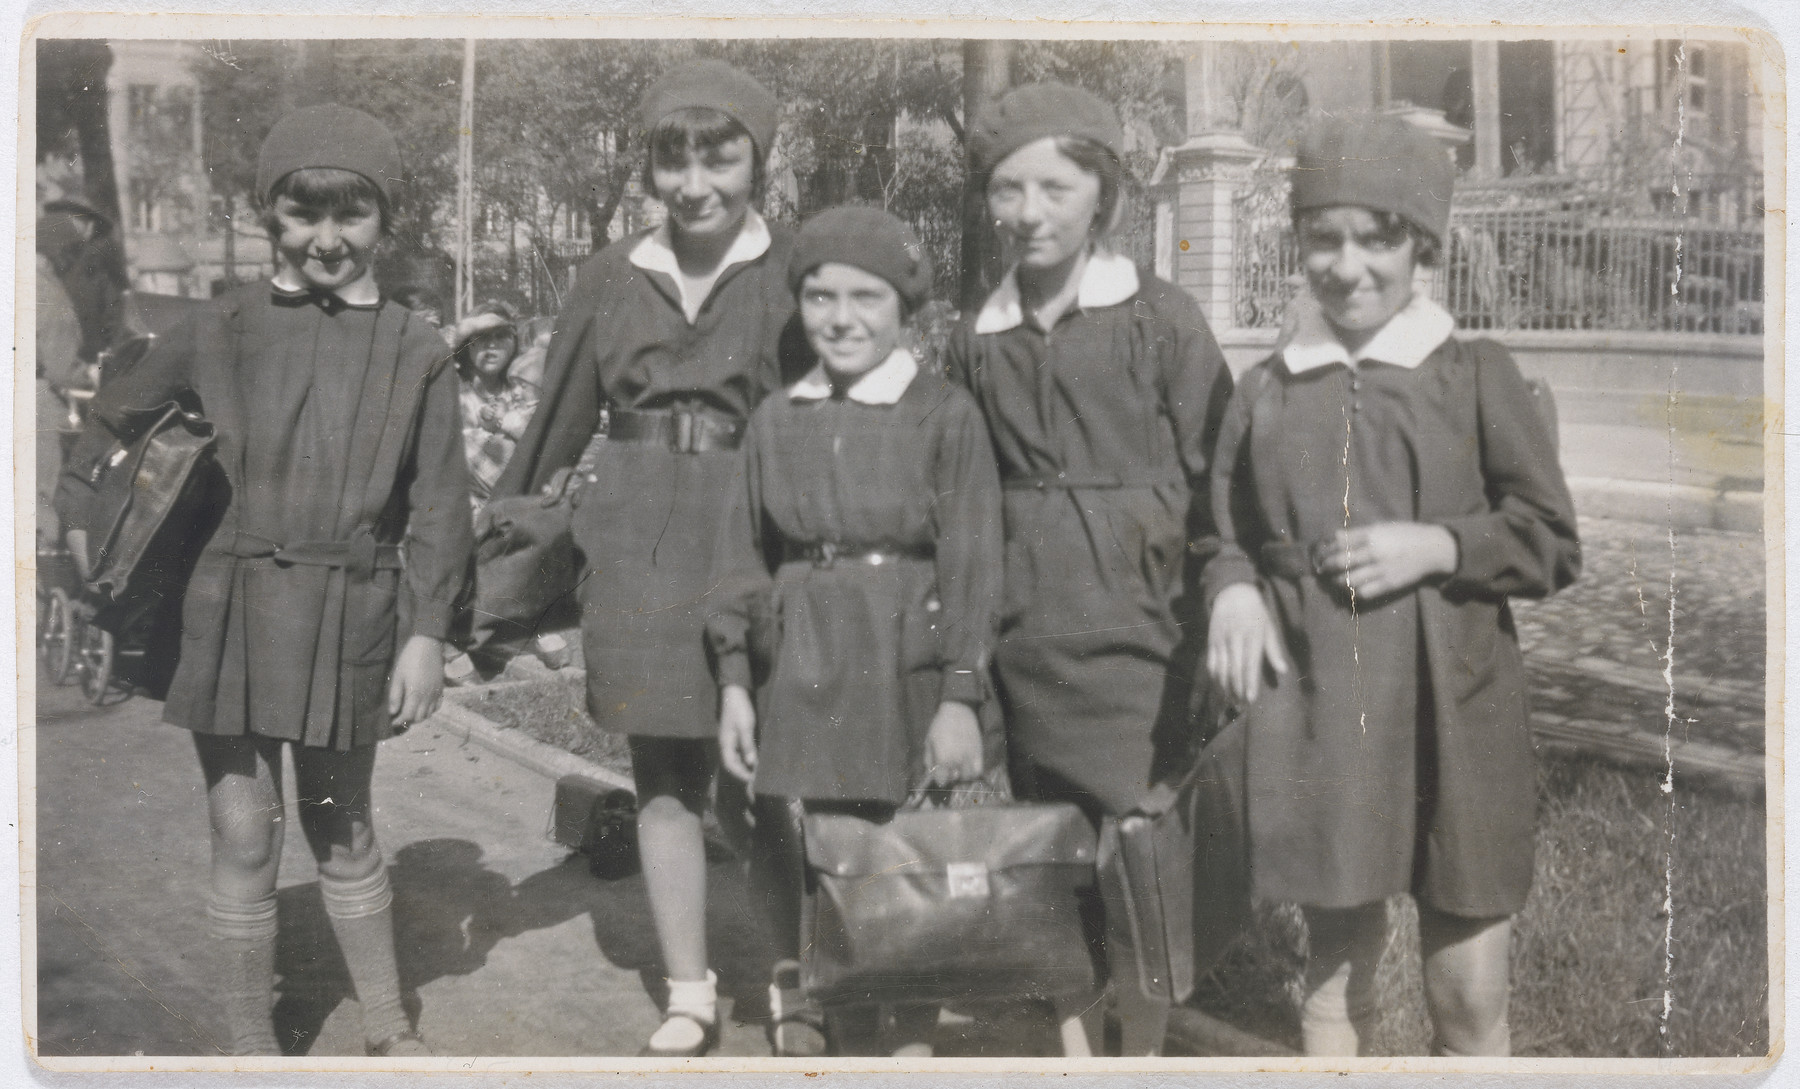 Five girls carry their book bags on their way to the Hochstein Gymnasium in Lodz.  Pictured from left to right are Mindla Reiss; Bronka Rheingold; Marysia Sheinberg; Mira Poznanska and Bela Ginzburg.      They graduated from high school in 1938.  The photograph was taken by Fania Ginzburg Rubashkin, Bela's older sister. Bronka Rheingold, Bela Ginzburg and Marysia Sheinberg were killed in the Warsaw ghetto.  Mira Poznanska was murdered together with her husband in Czestochowa.